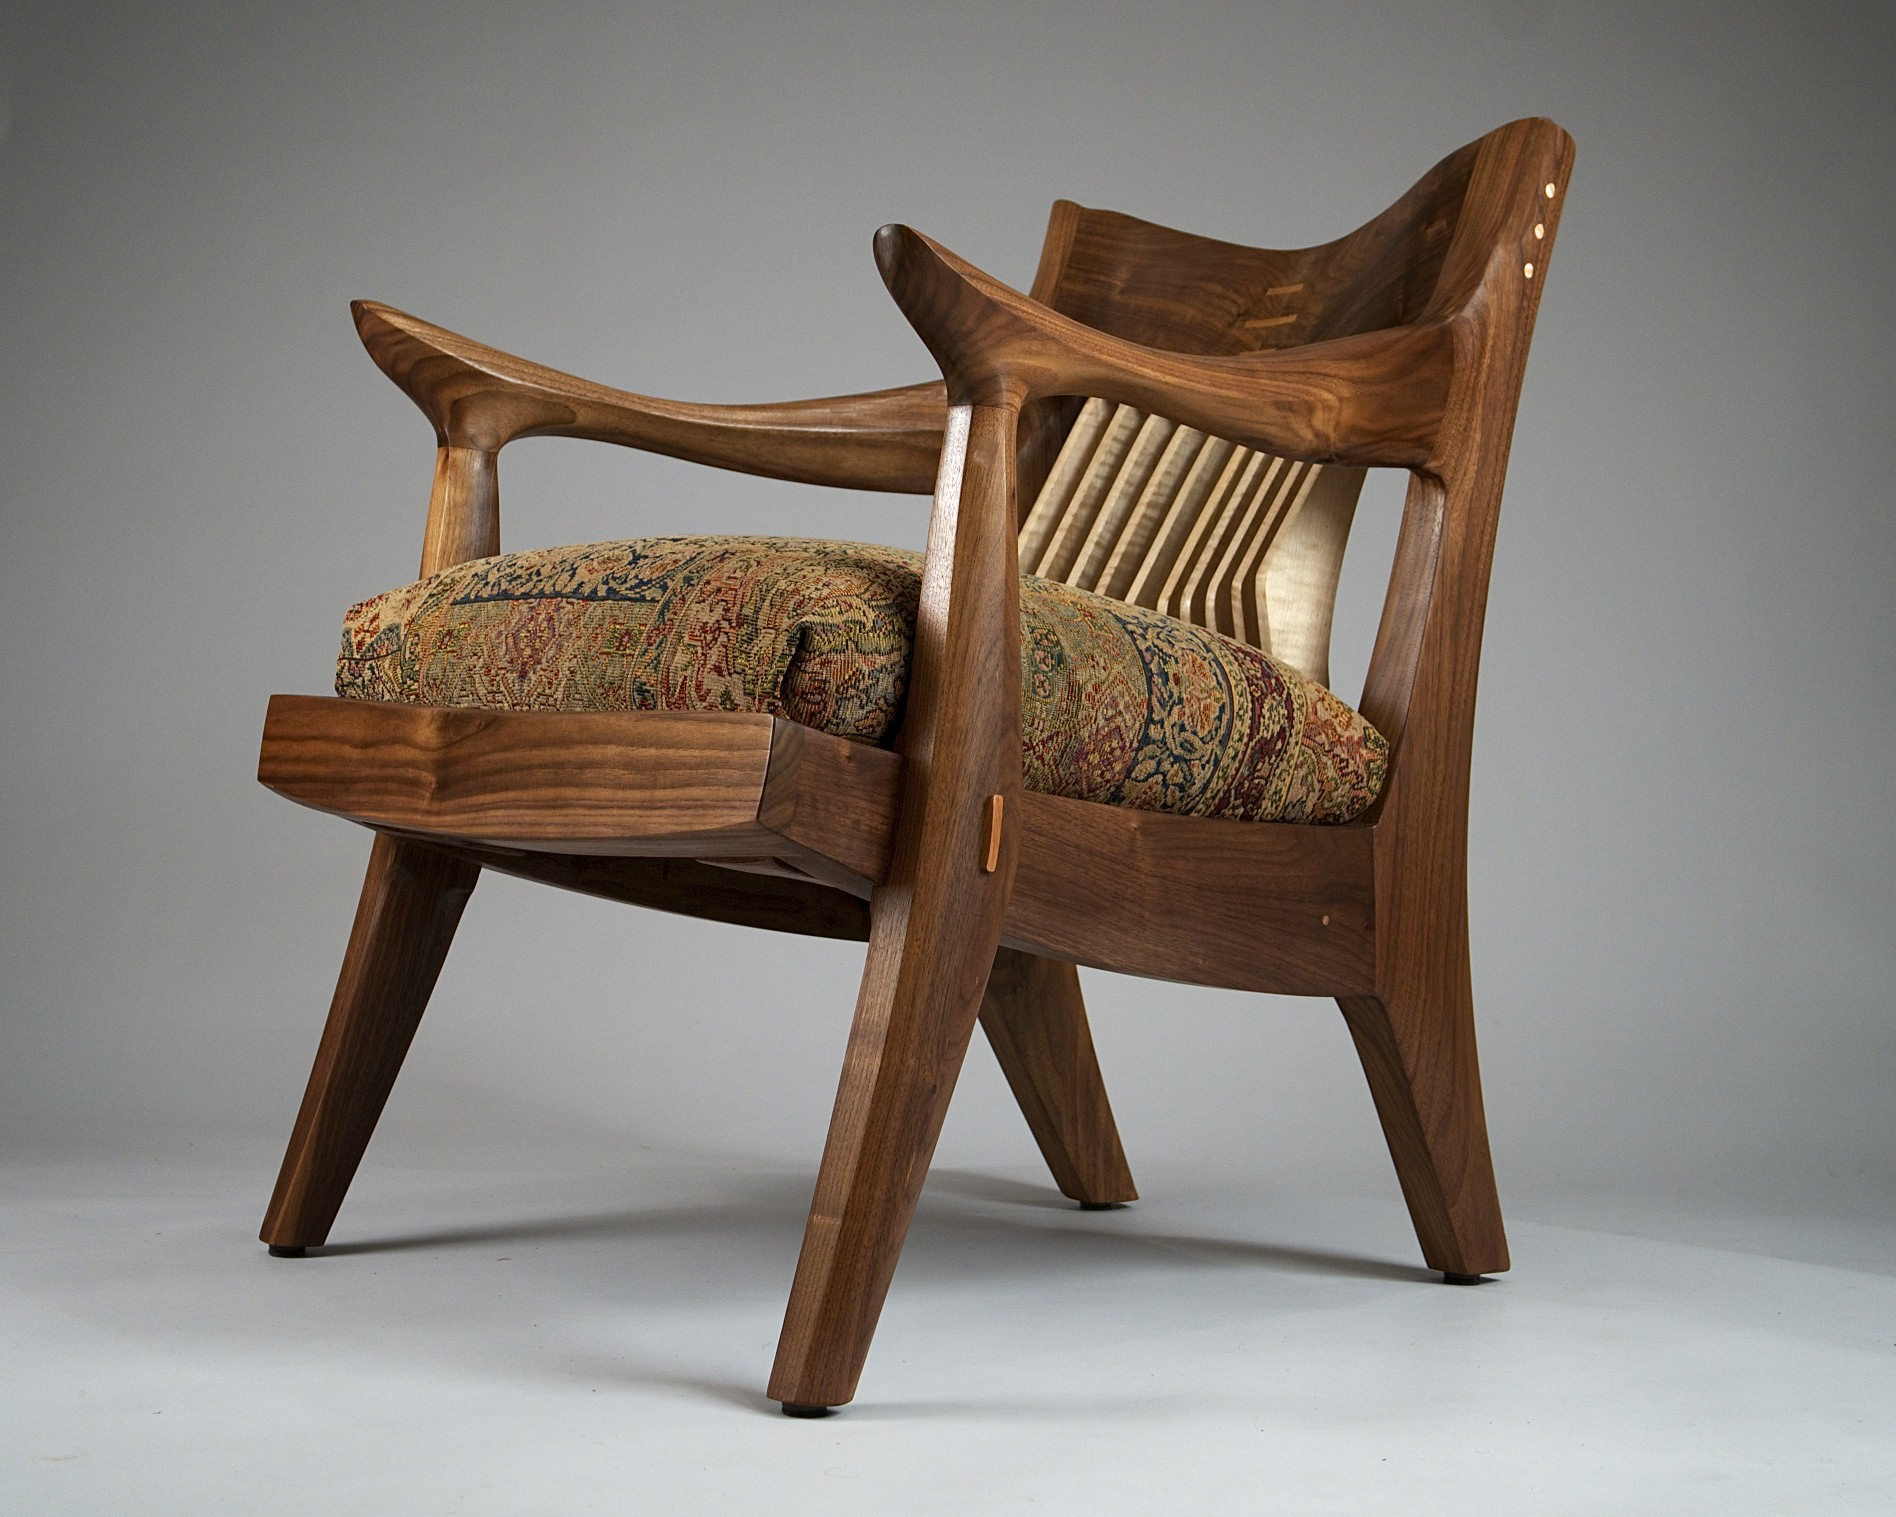 Tangier Chair in black walnut with maple spindles